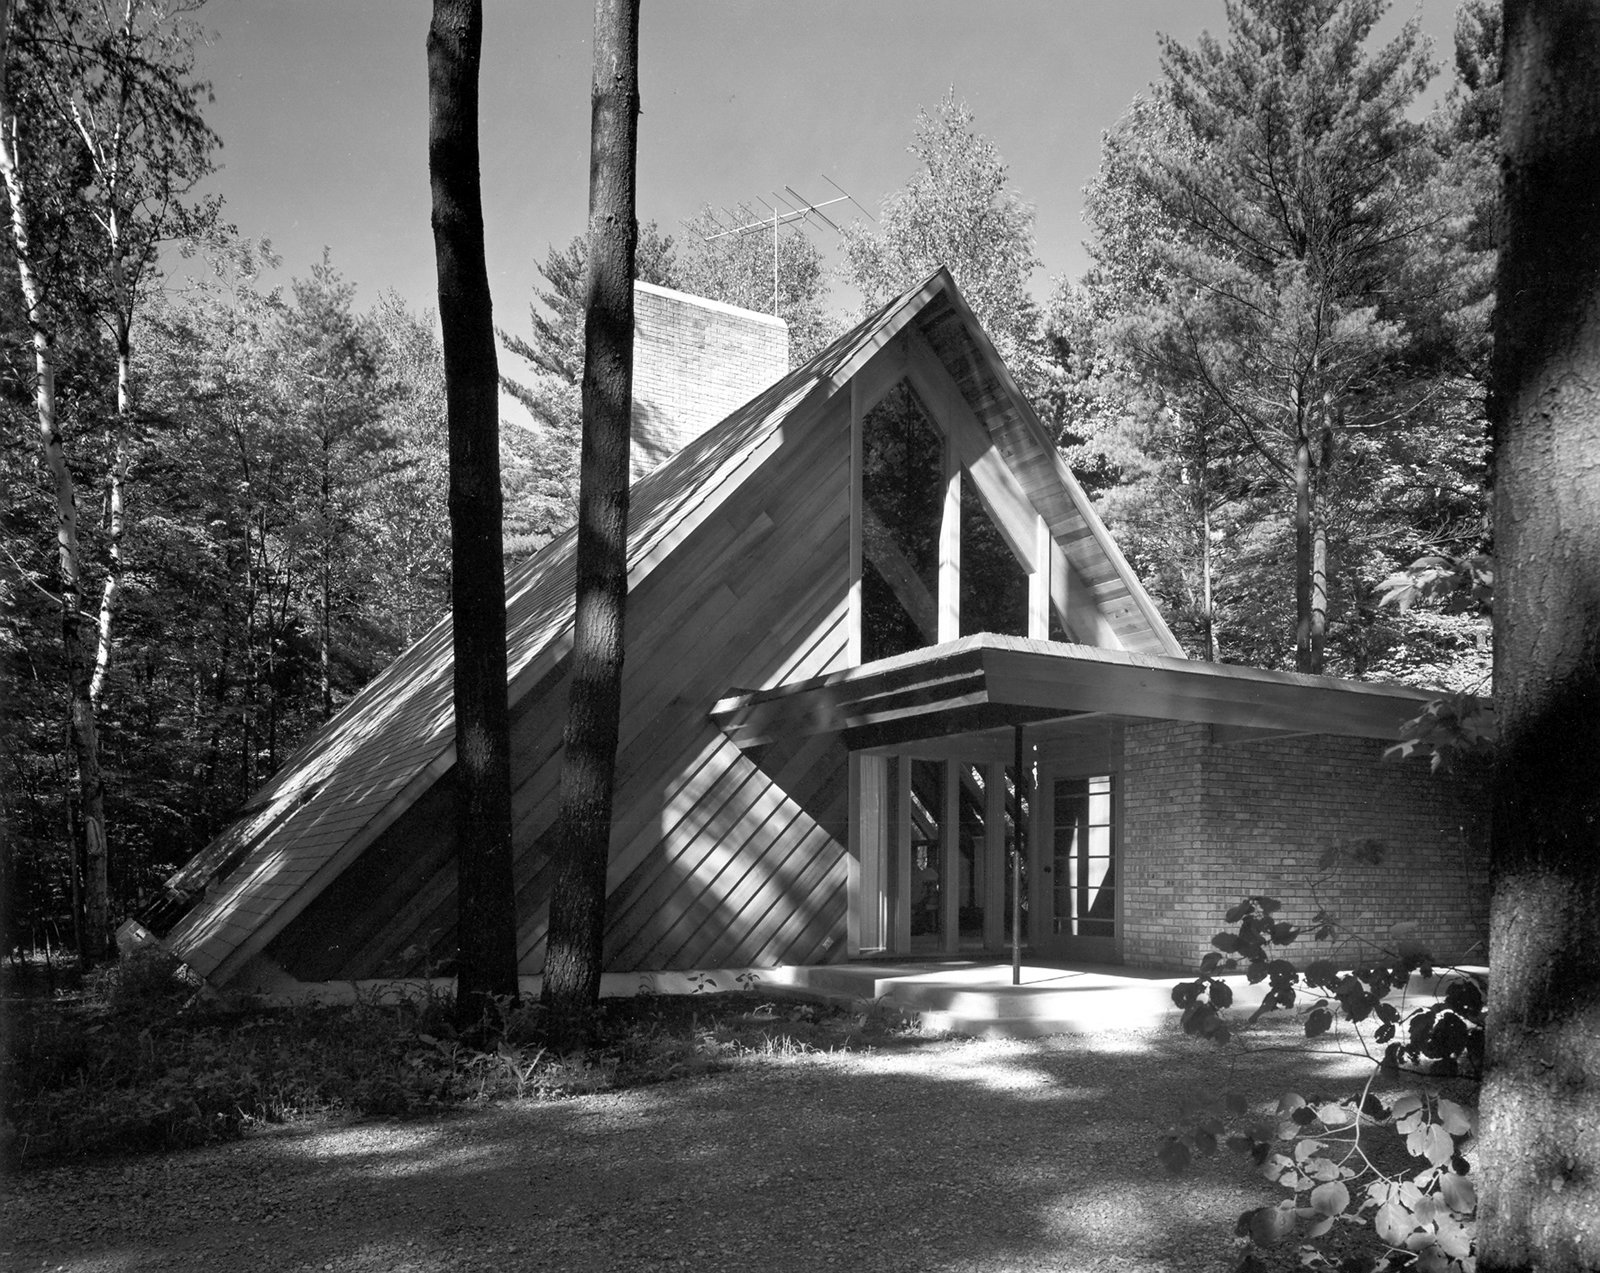 The Ashmun House in Midland makes use of a strong A-frame. It was designed for a classic pianist on a secluded street.